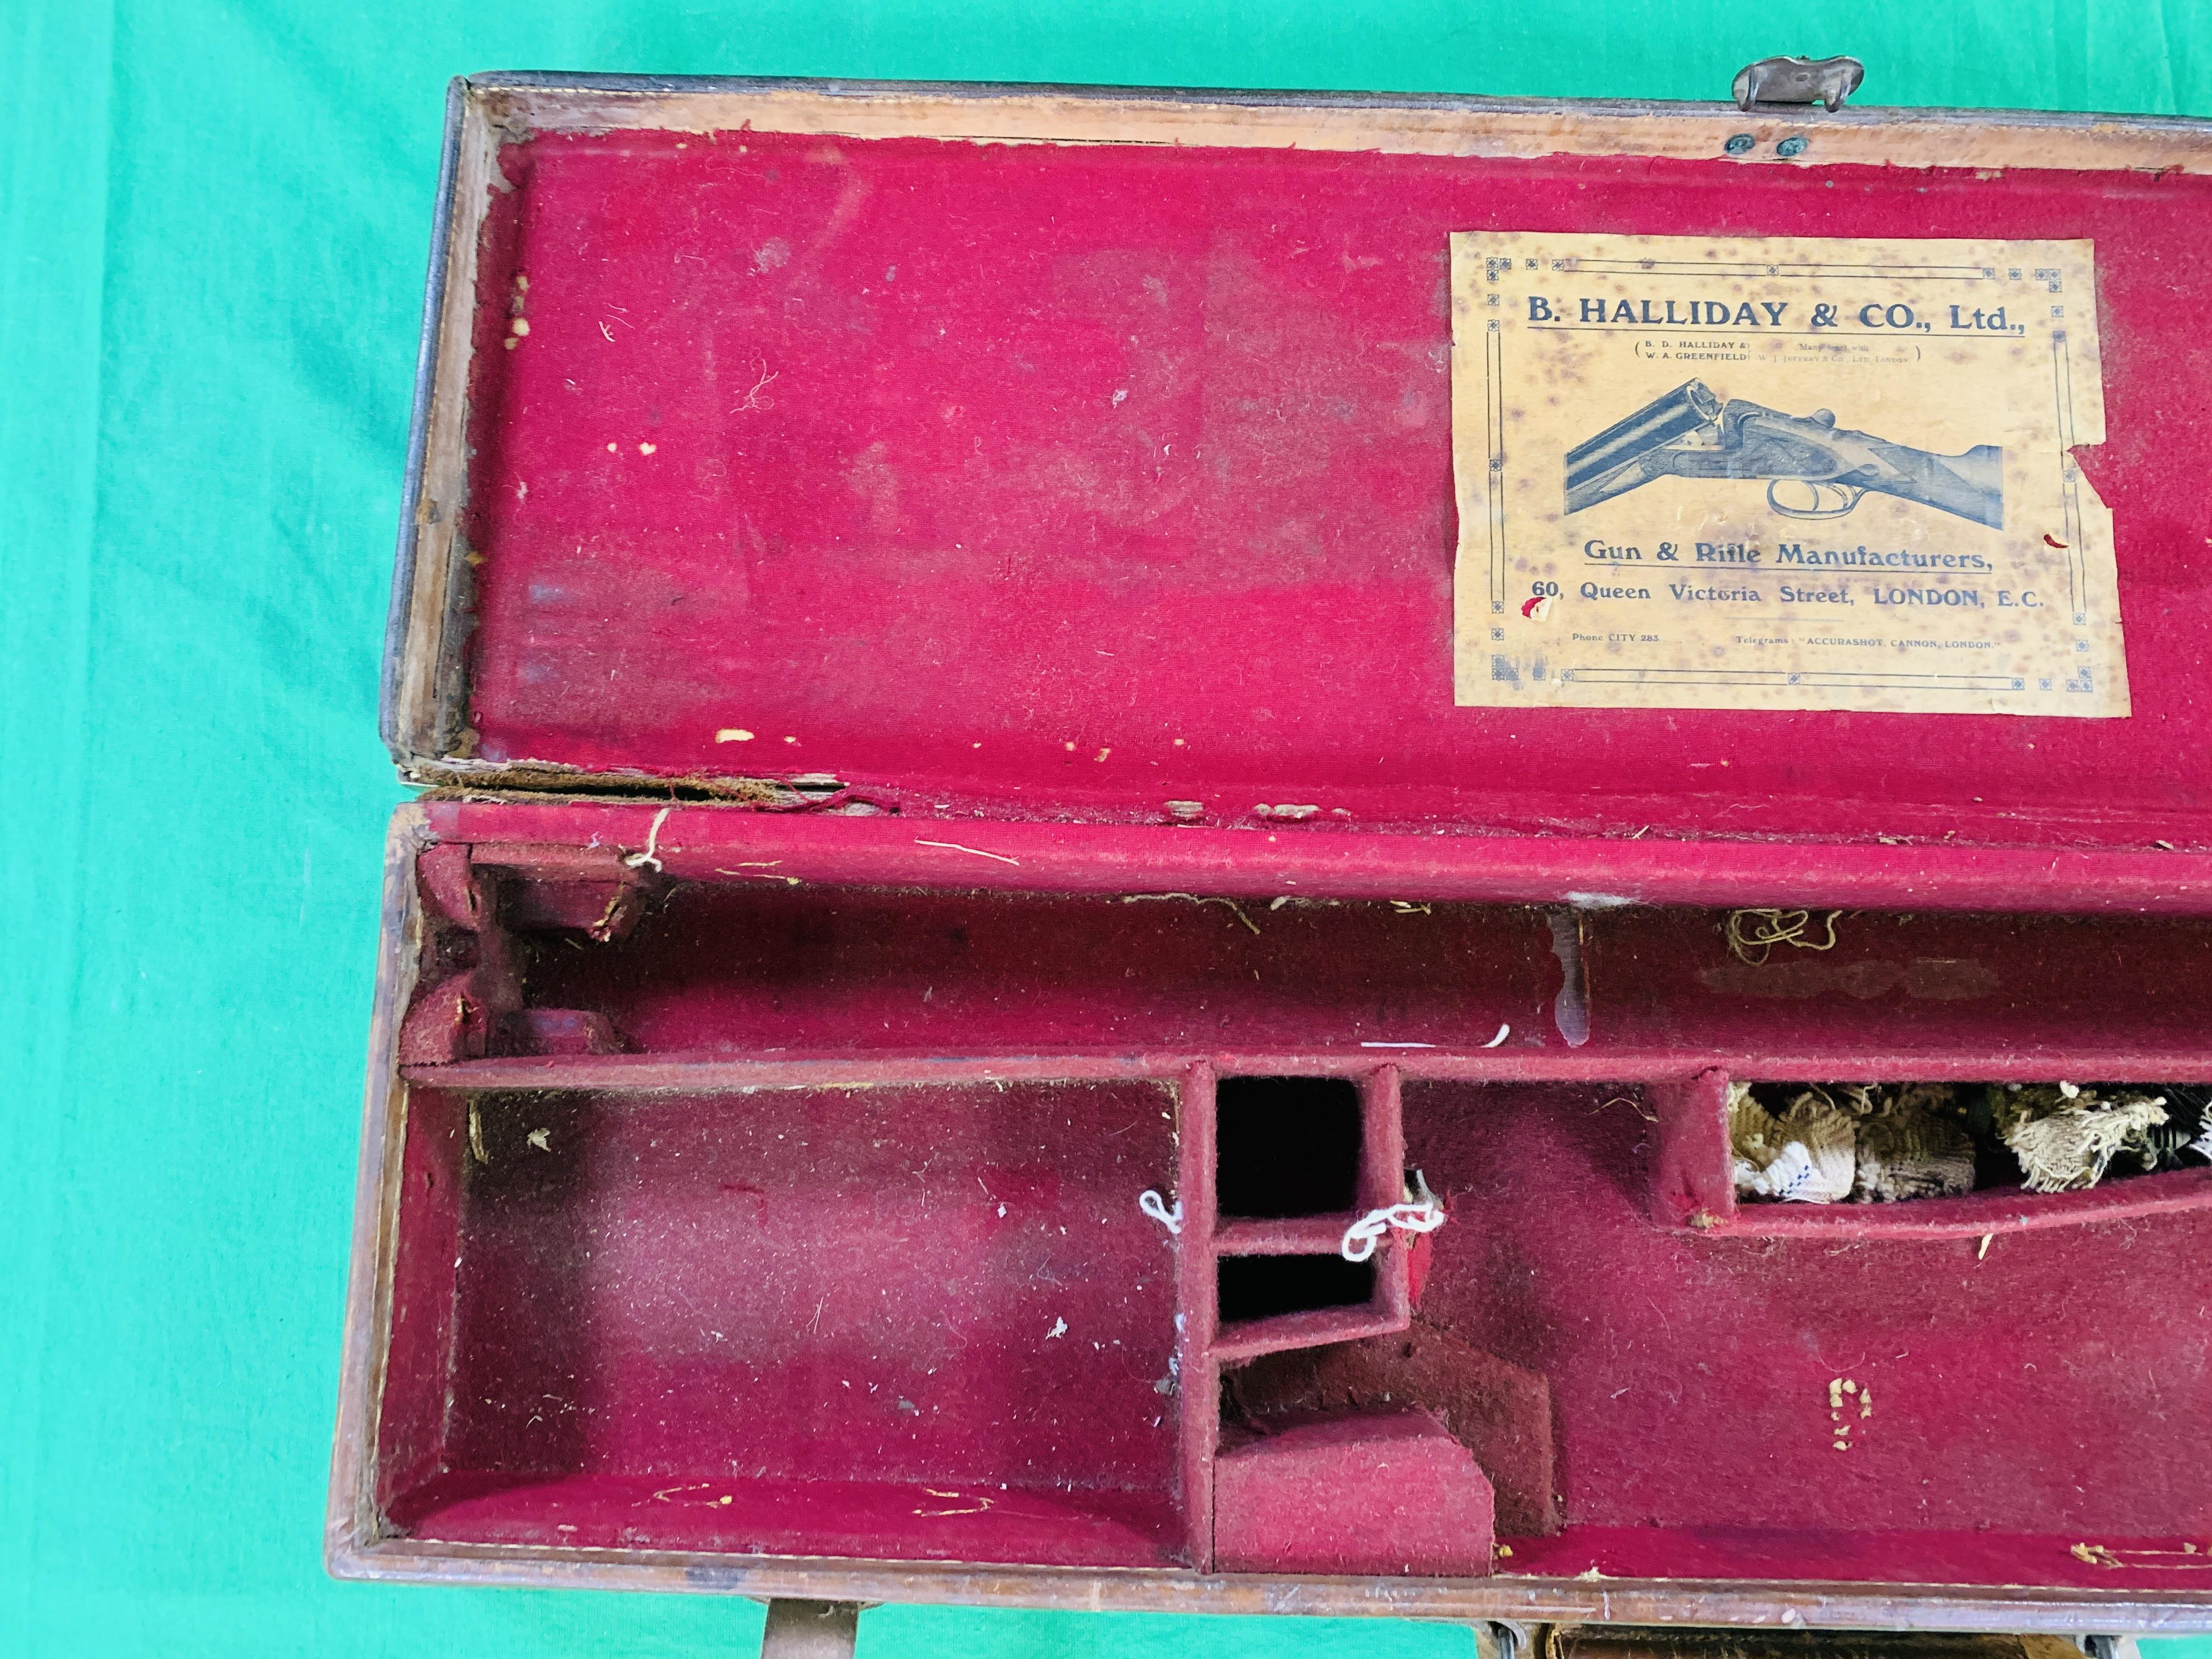 """OAK AND LEATHER 28 / 30"""" SIDE BY SIDE GUN CASE WITH B. HALLIDAY AND CO. LTD OF LONDON CASE LABEL. - Image 3 of 10"""